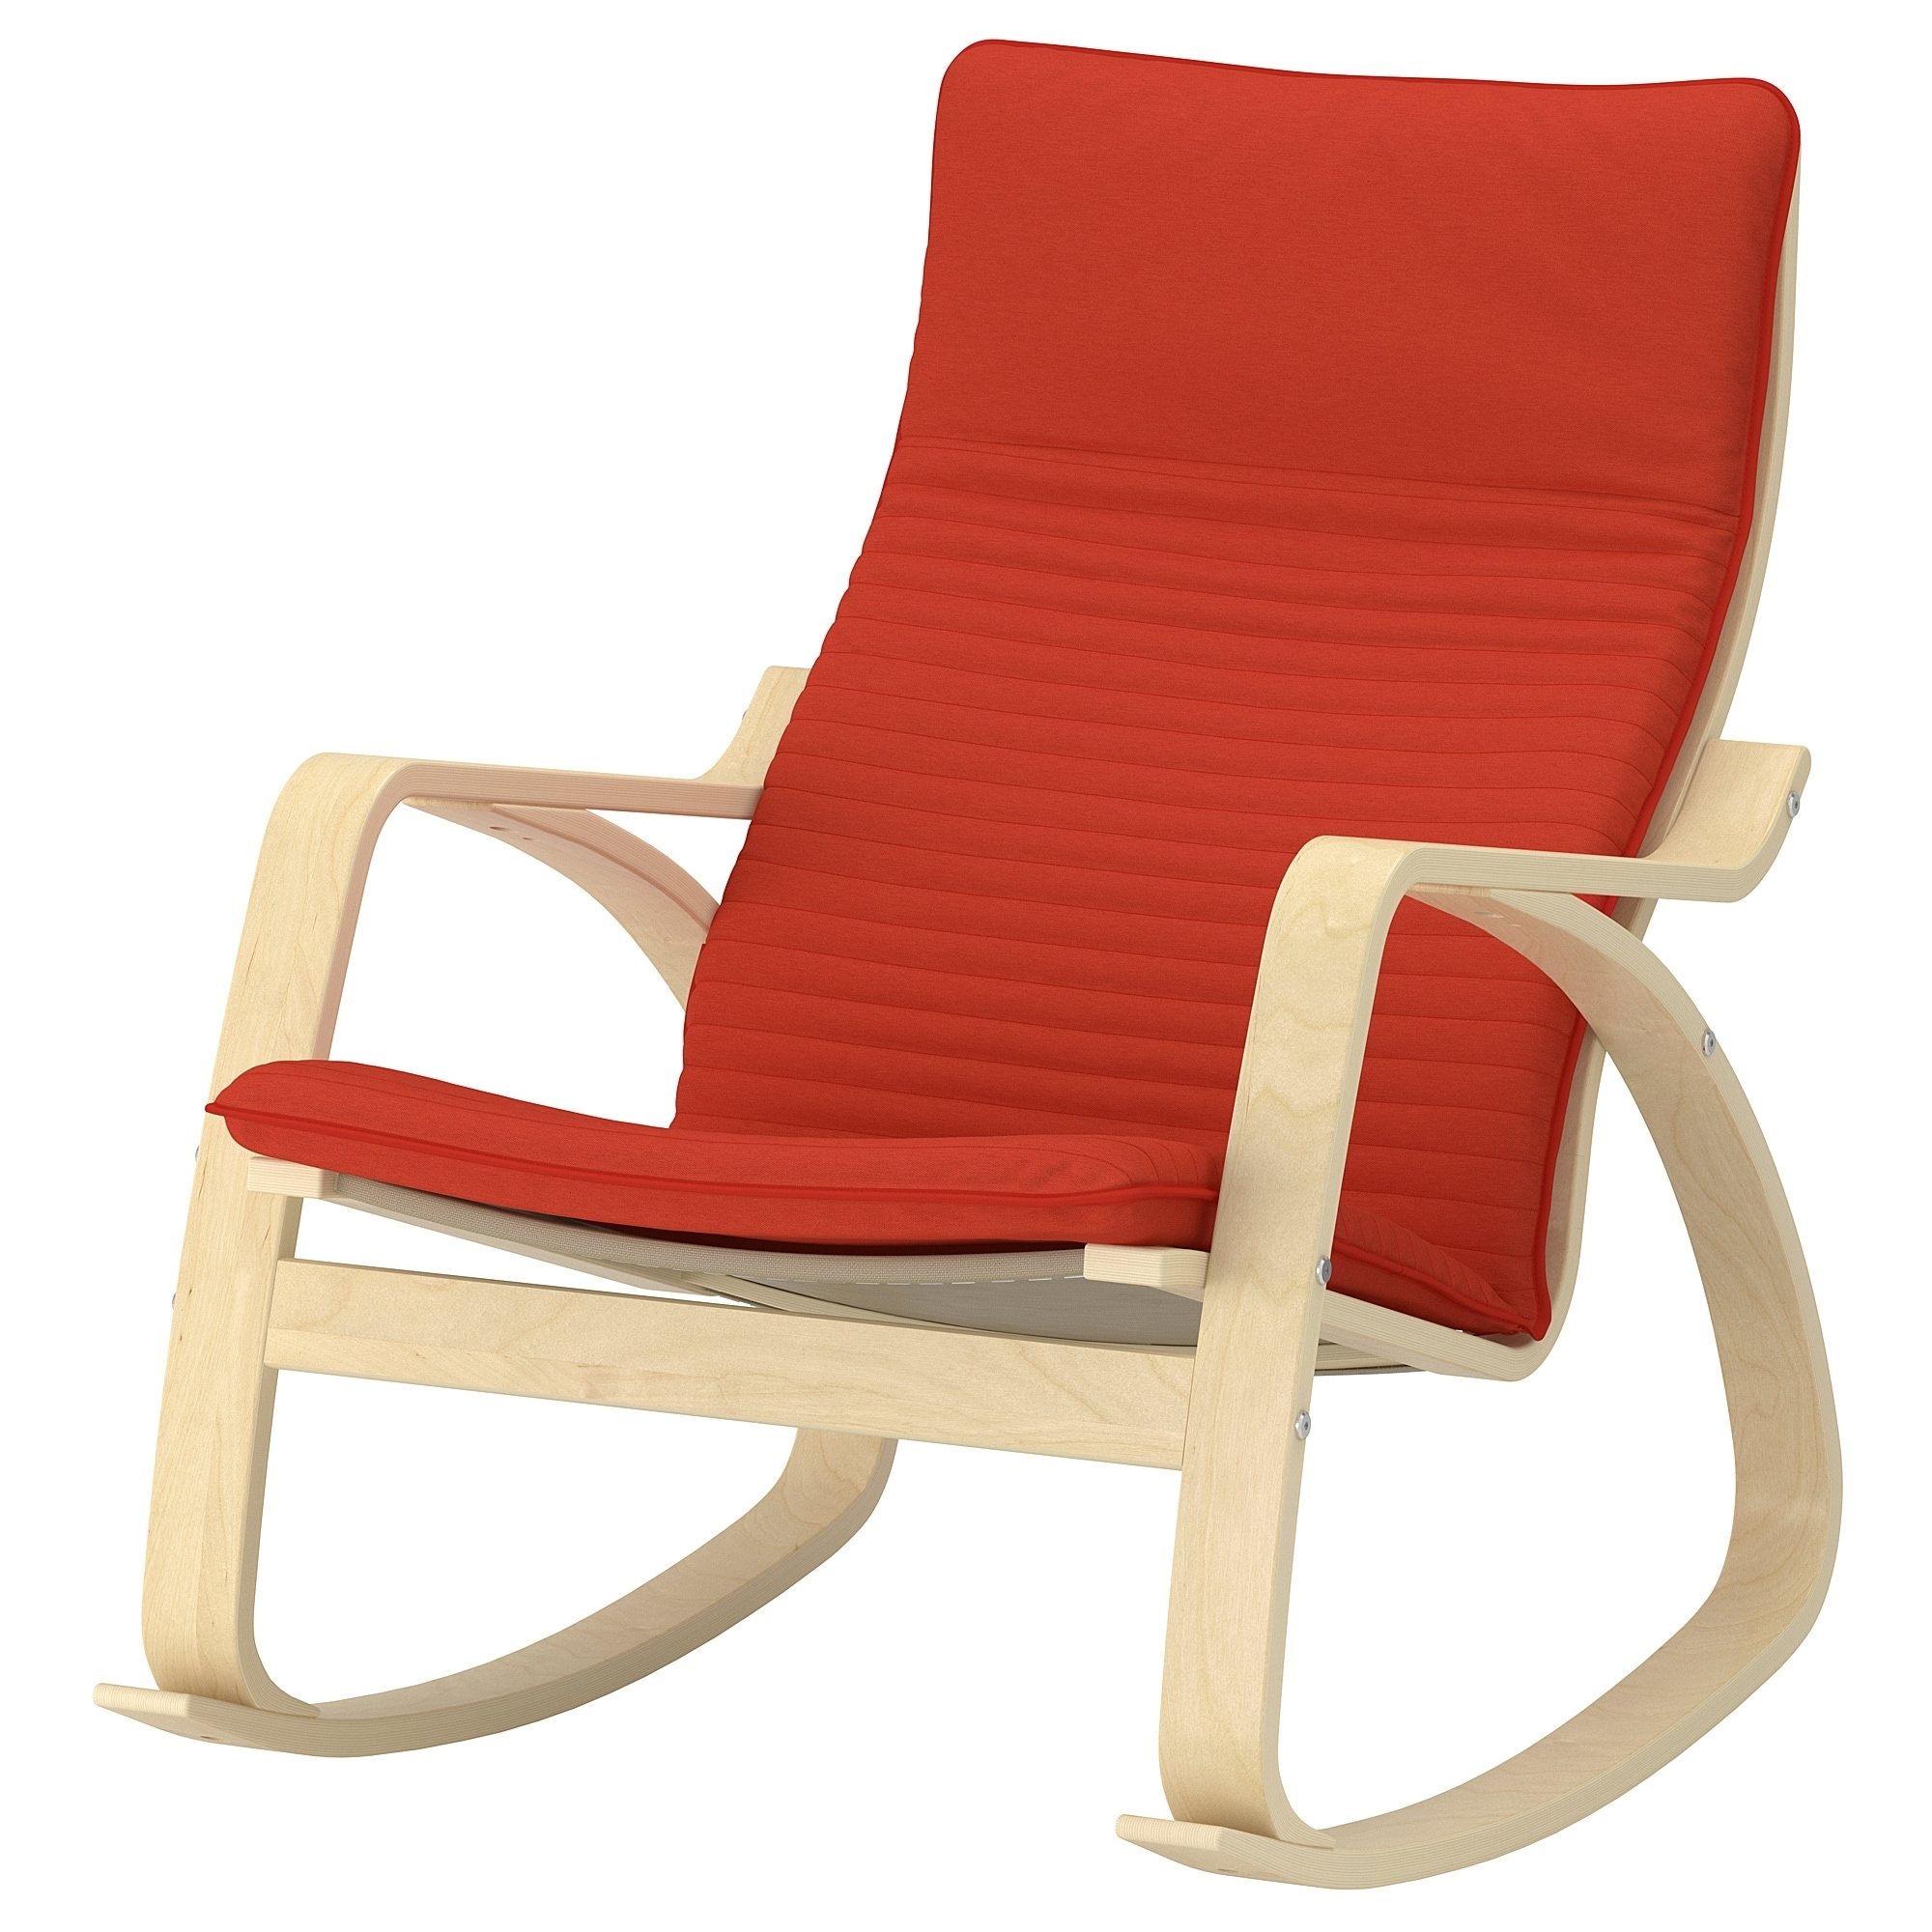 Inspiration about Poäng Rocking Chair – Knisa Red/orange – Ikea In Ikea Rocking Chairs (#10 of 15)